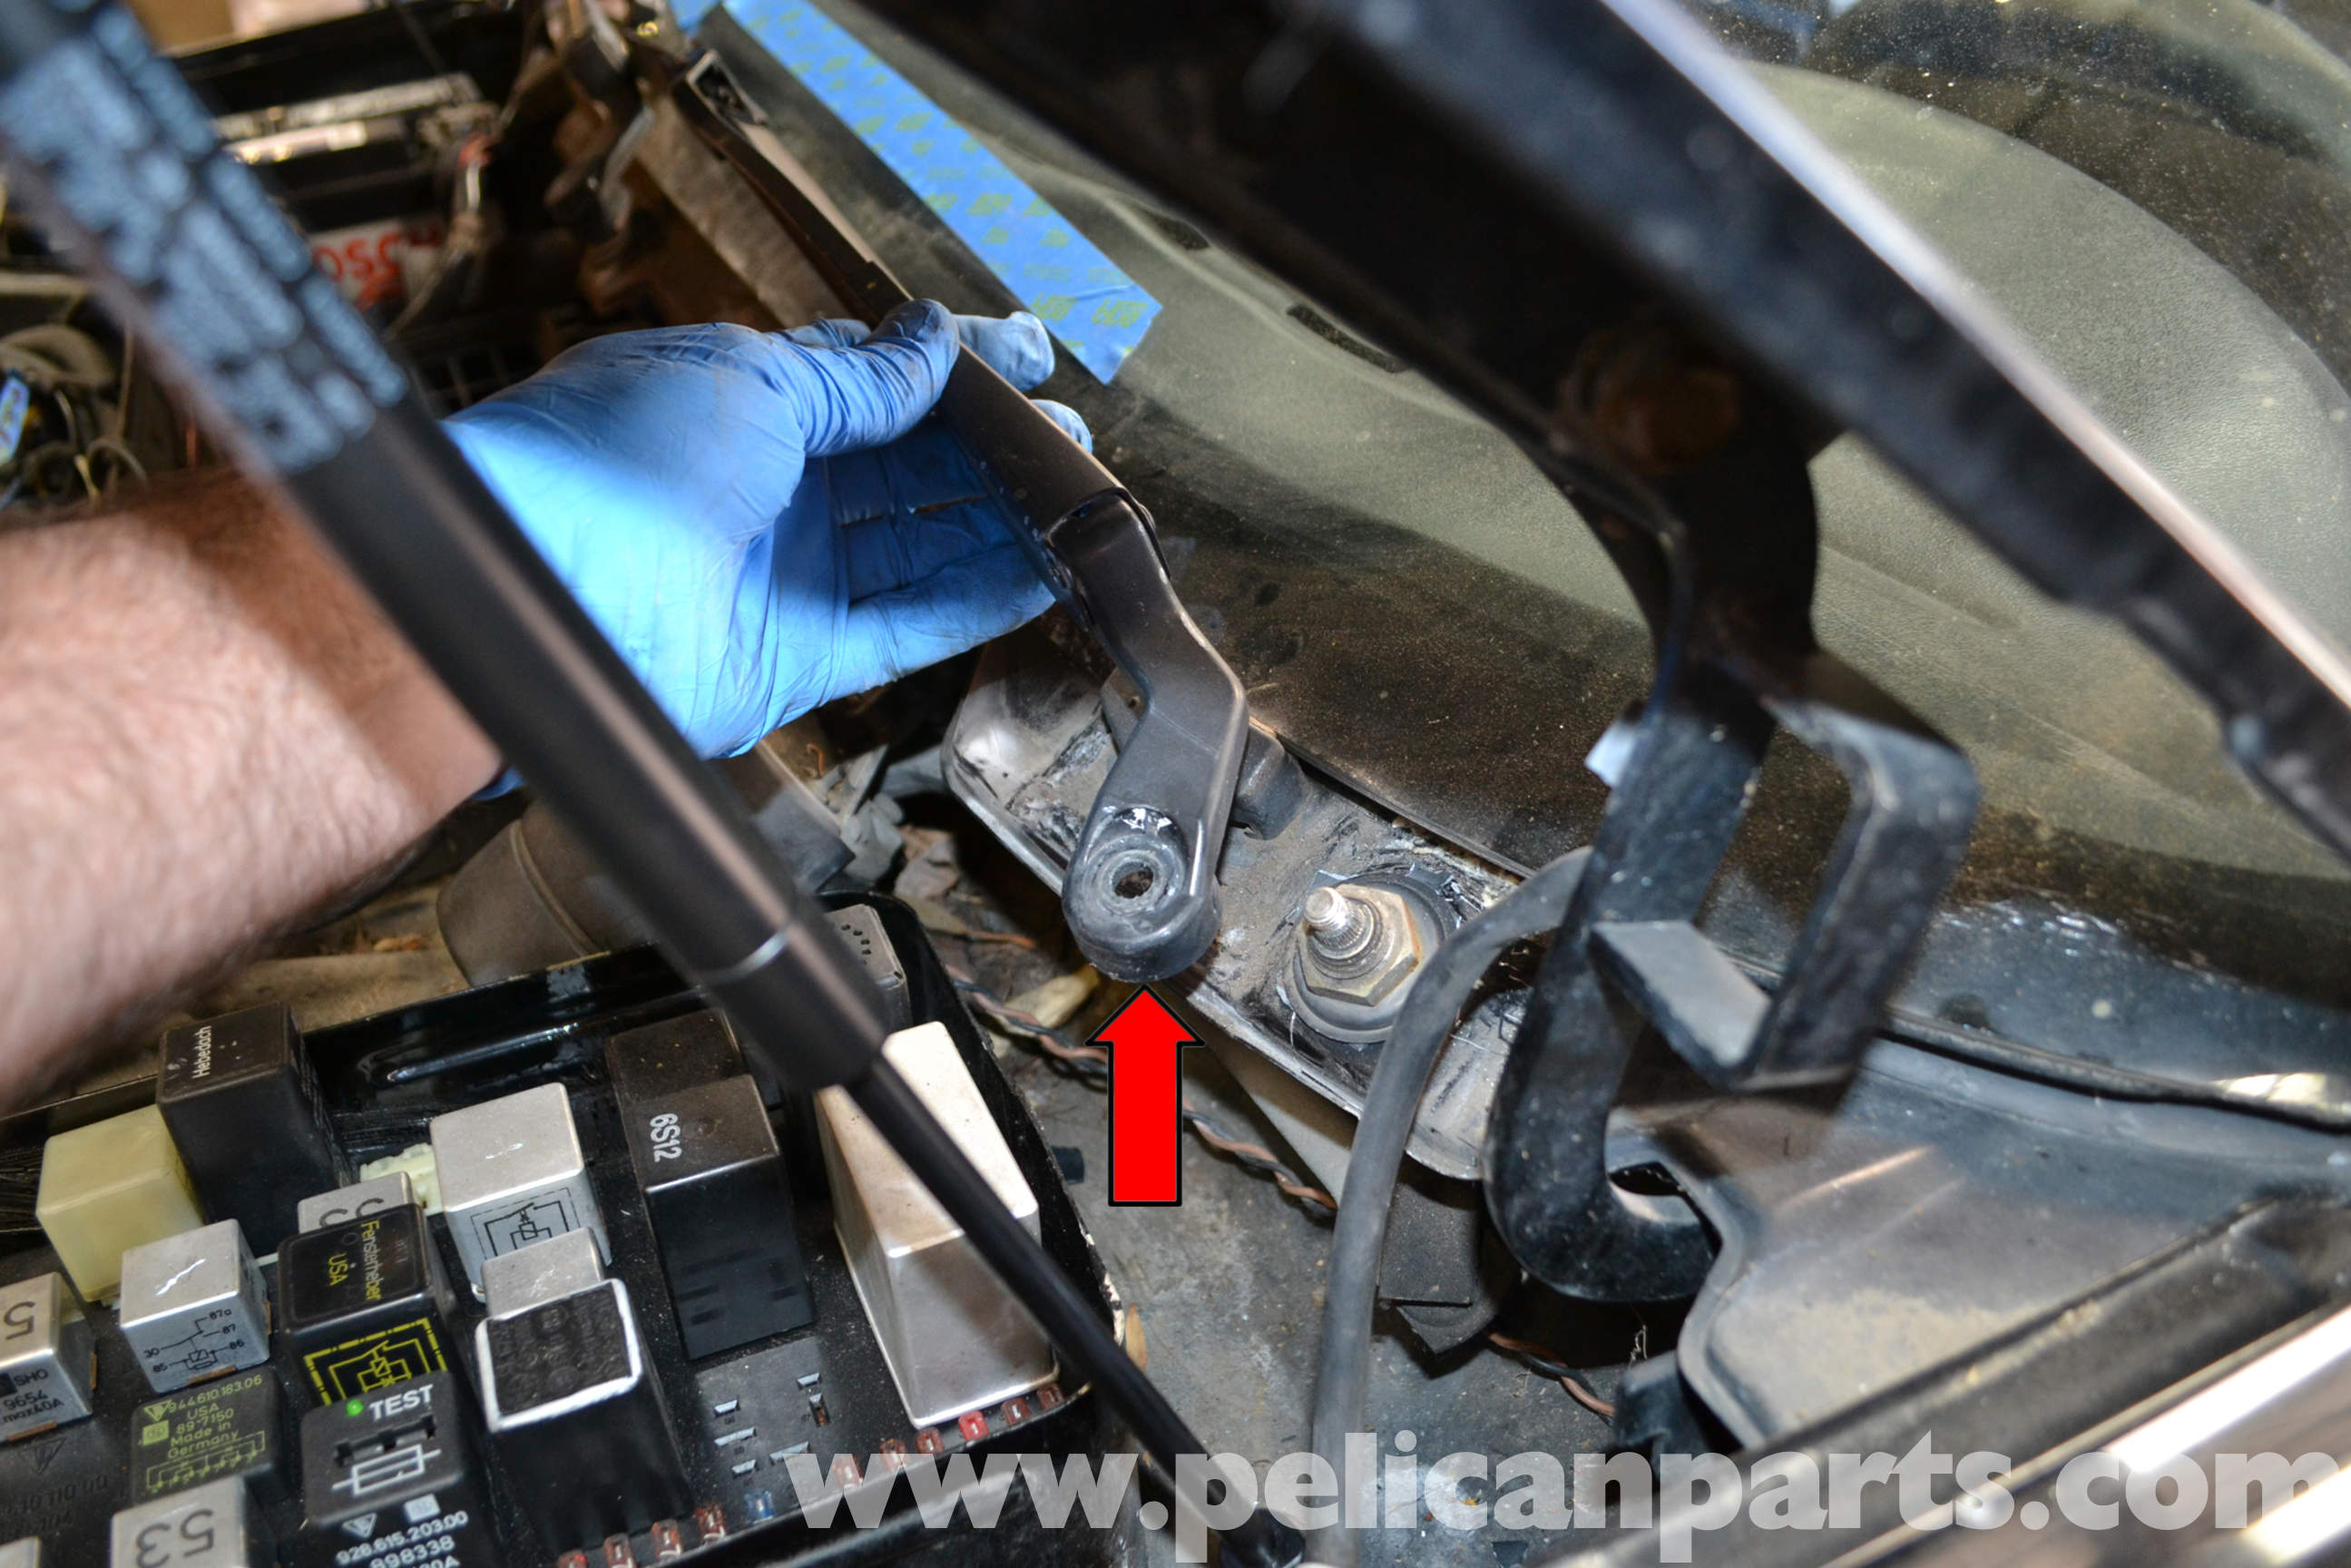 Pelican technical article porsche 944 turbo windshield for Windshield motor replacement cost